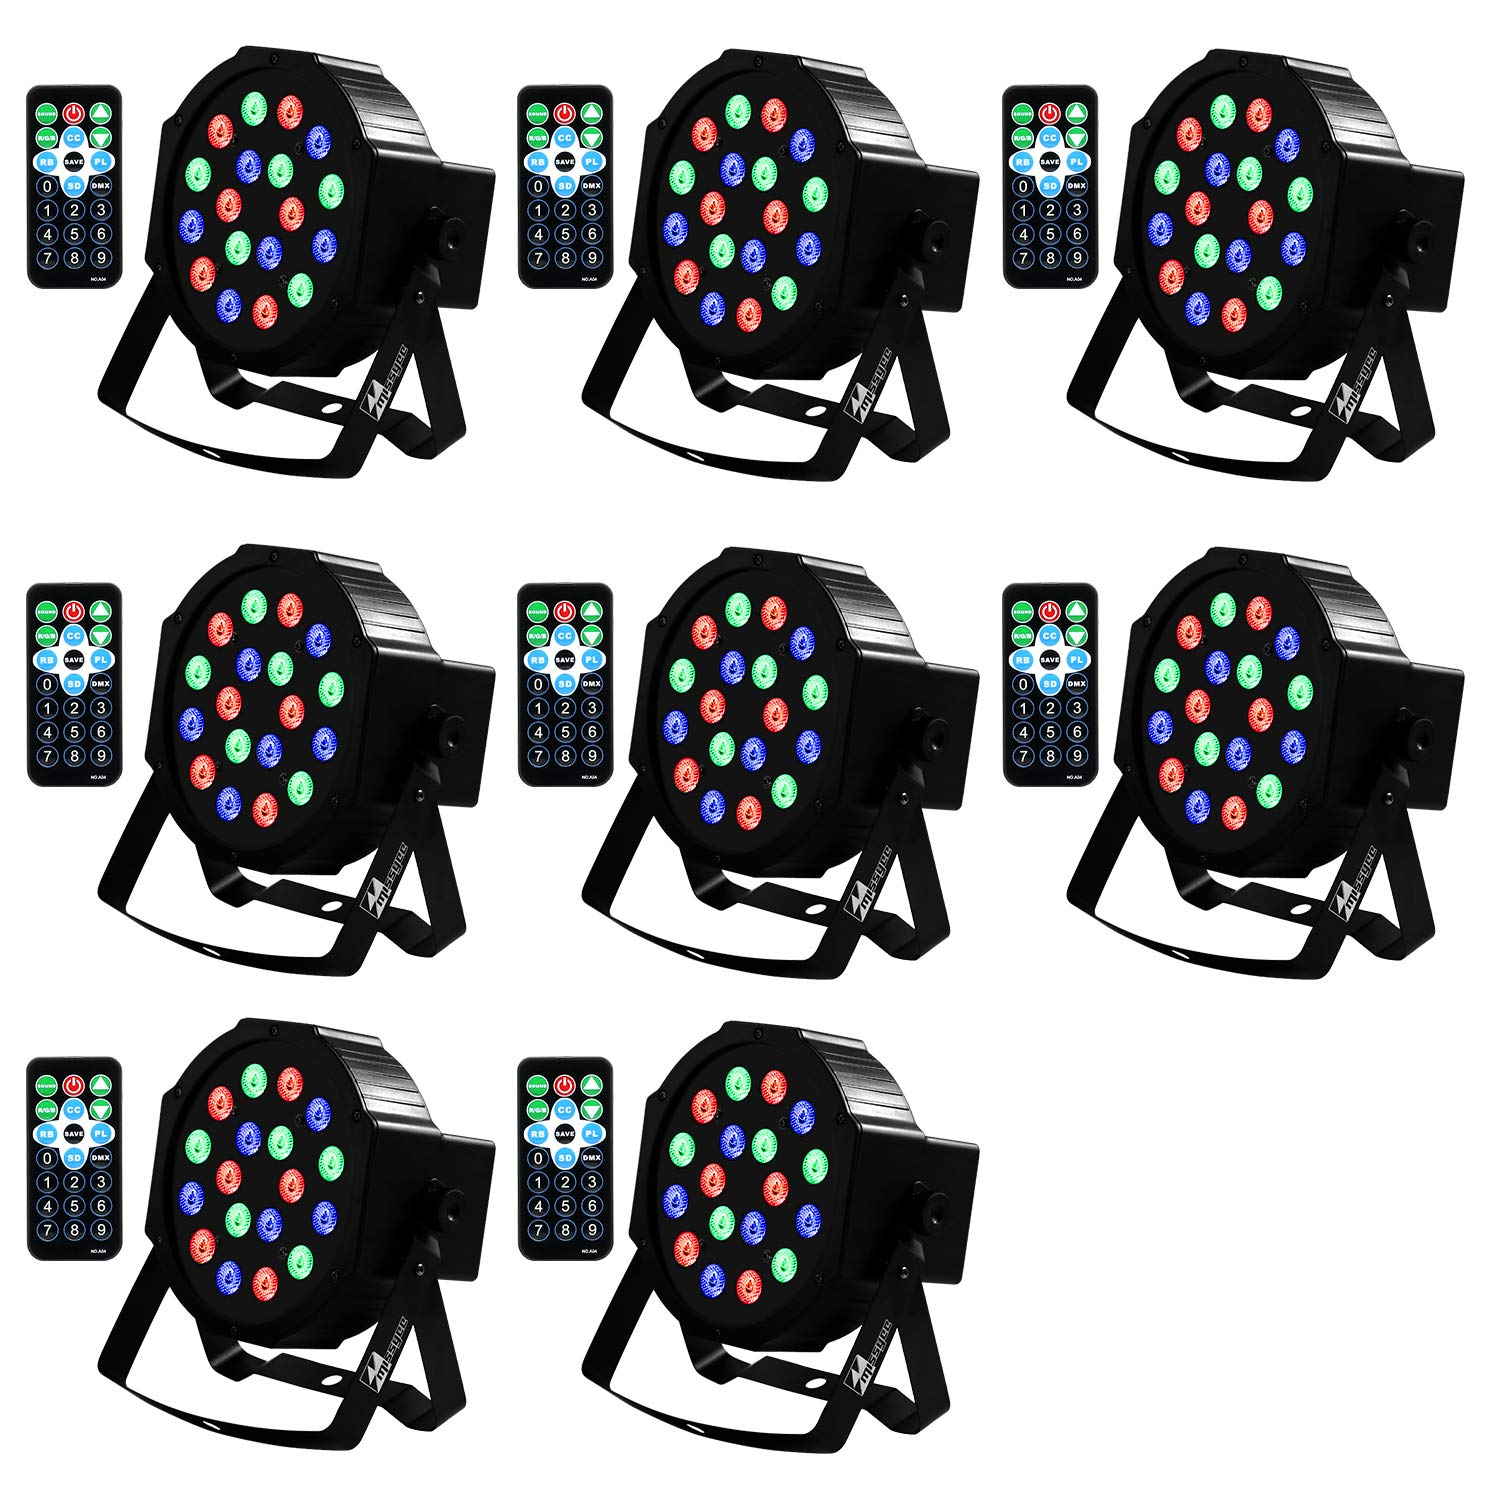 Uplights 18 RGB Led UpLights, Missyee Sound Activated DMX Uplighting, LED Par Can Lights with Remote Control, DJ Uplighting Package for Wedding Birthday Home Party (8 pcs) by Missyee